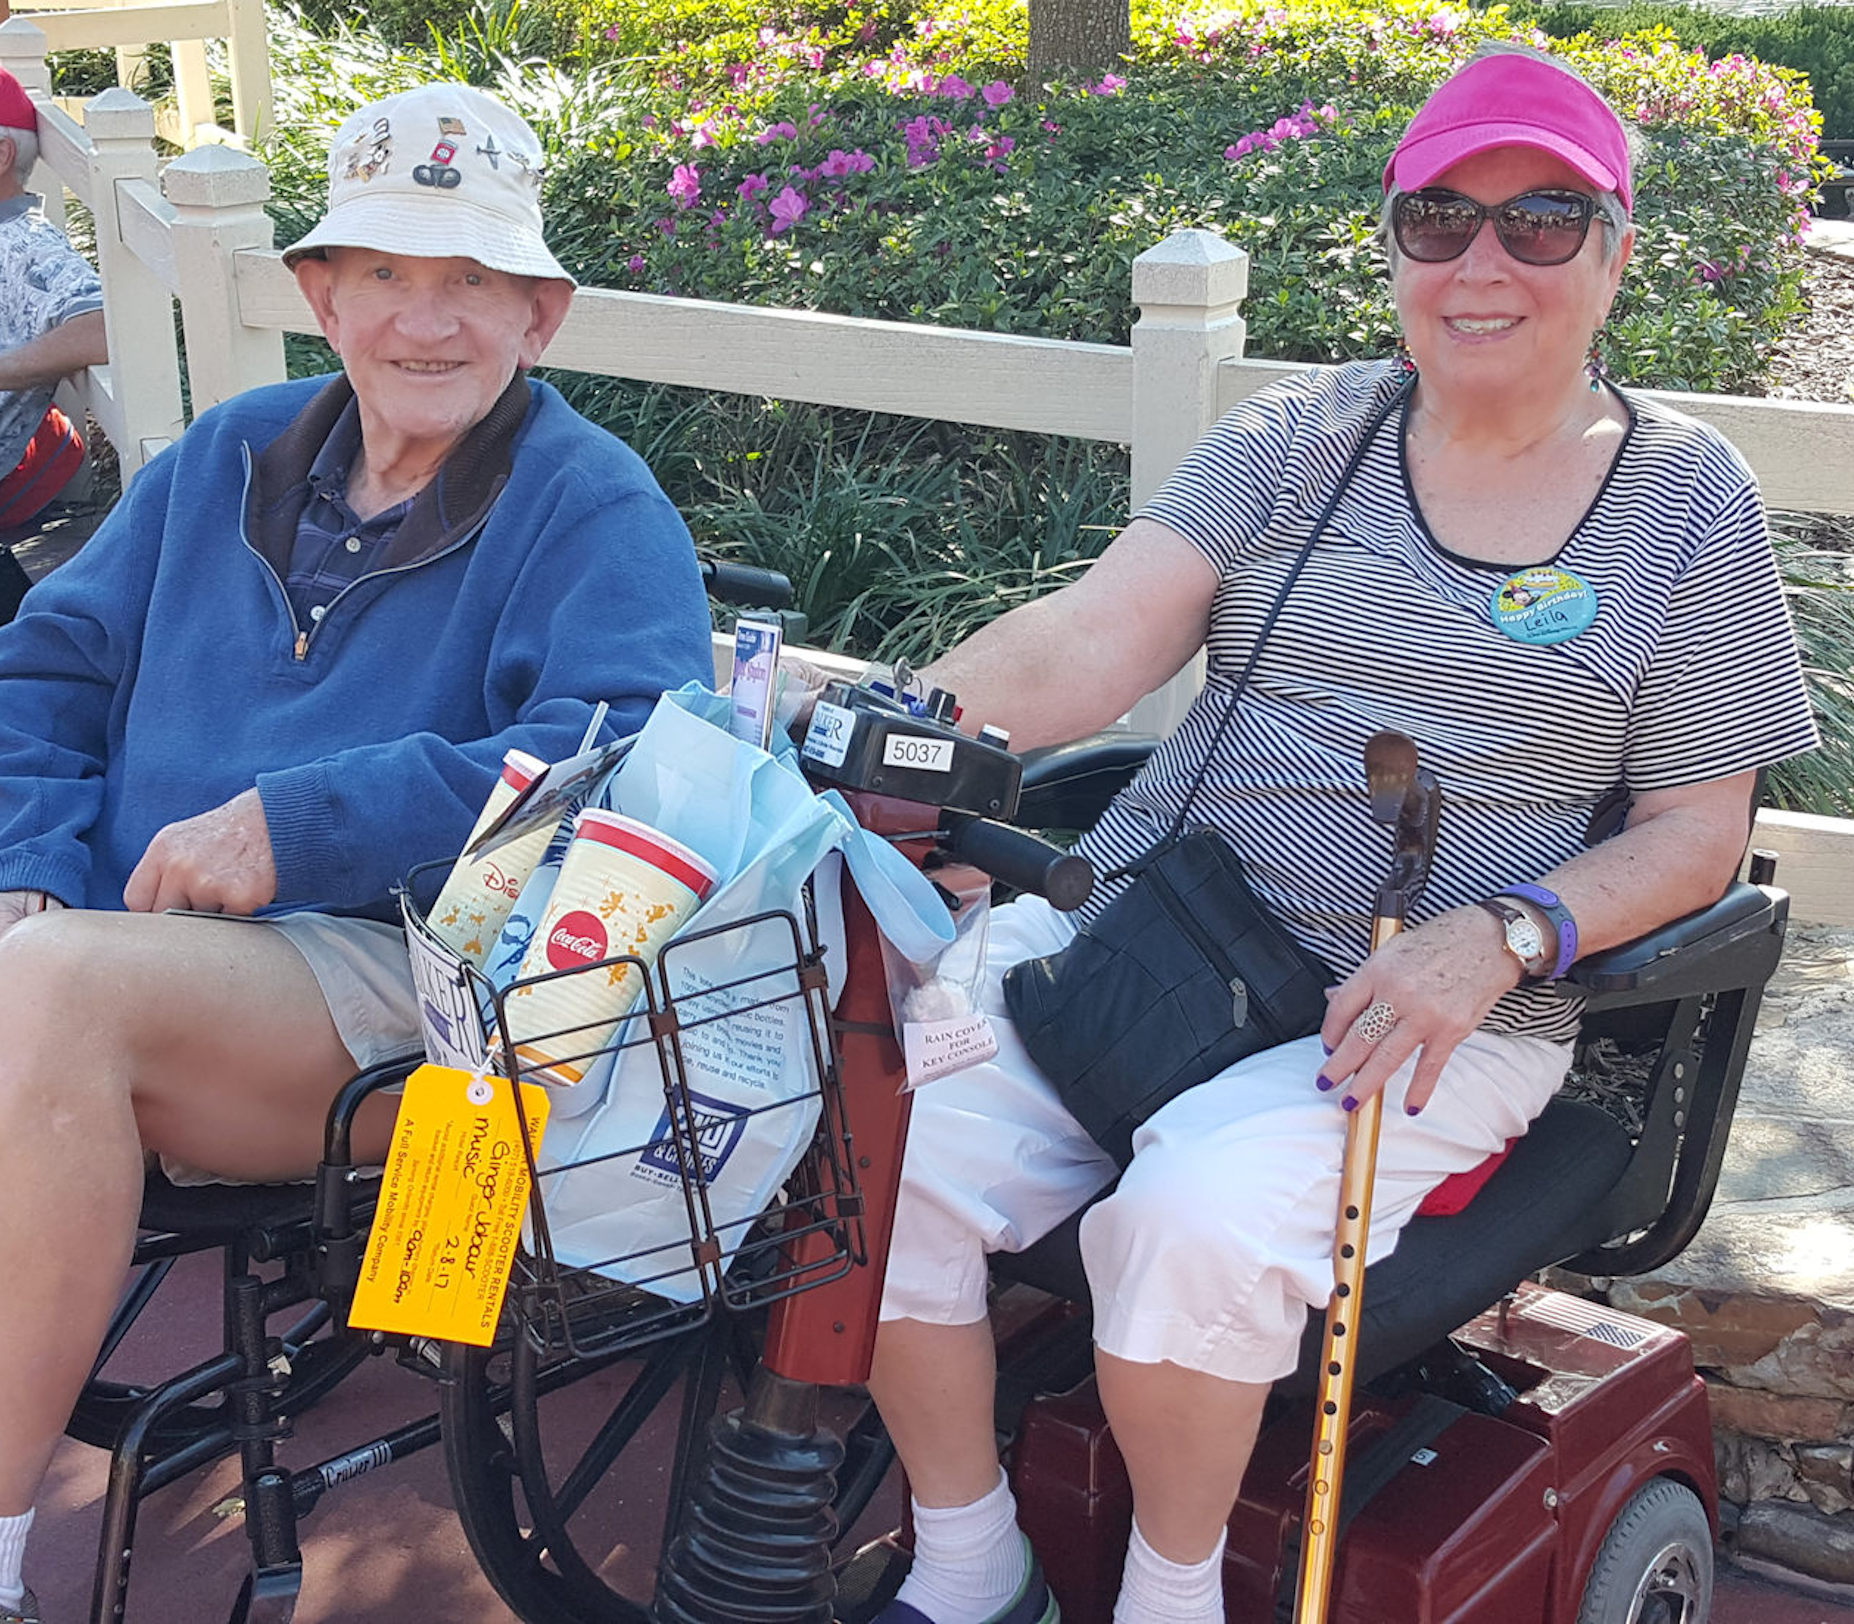 Tips for touring with guests using scooters and wheelchairs |PassPorter.com